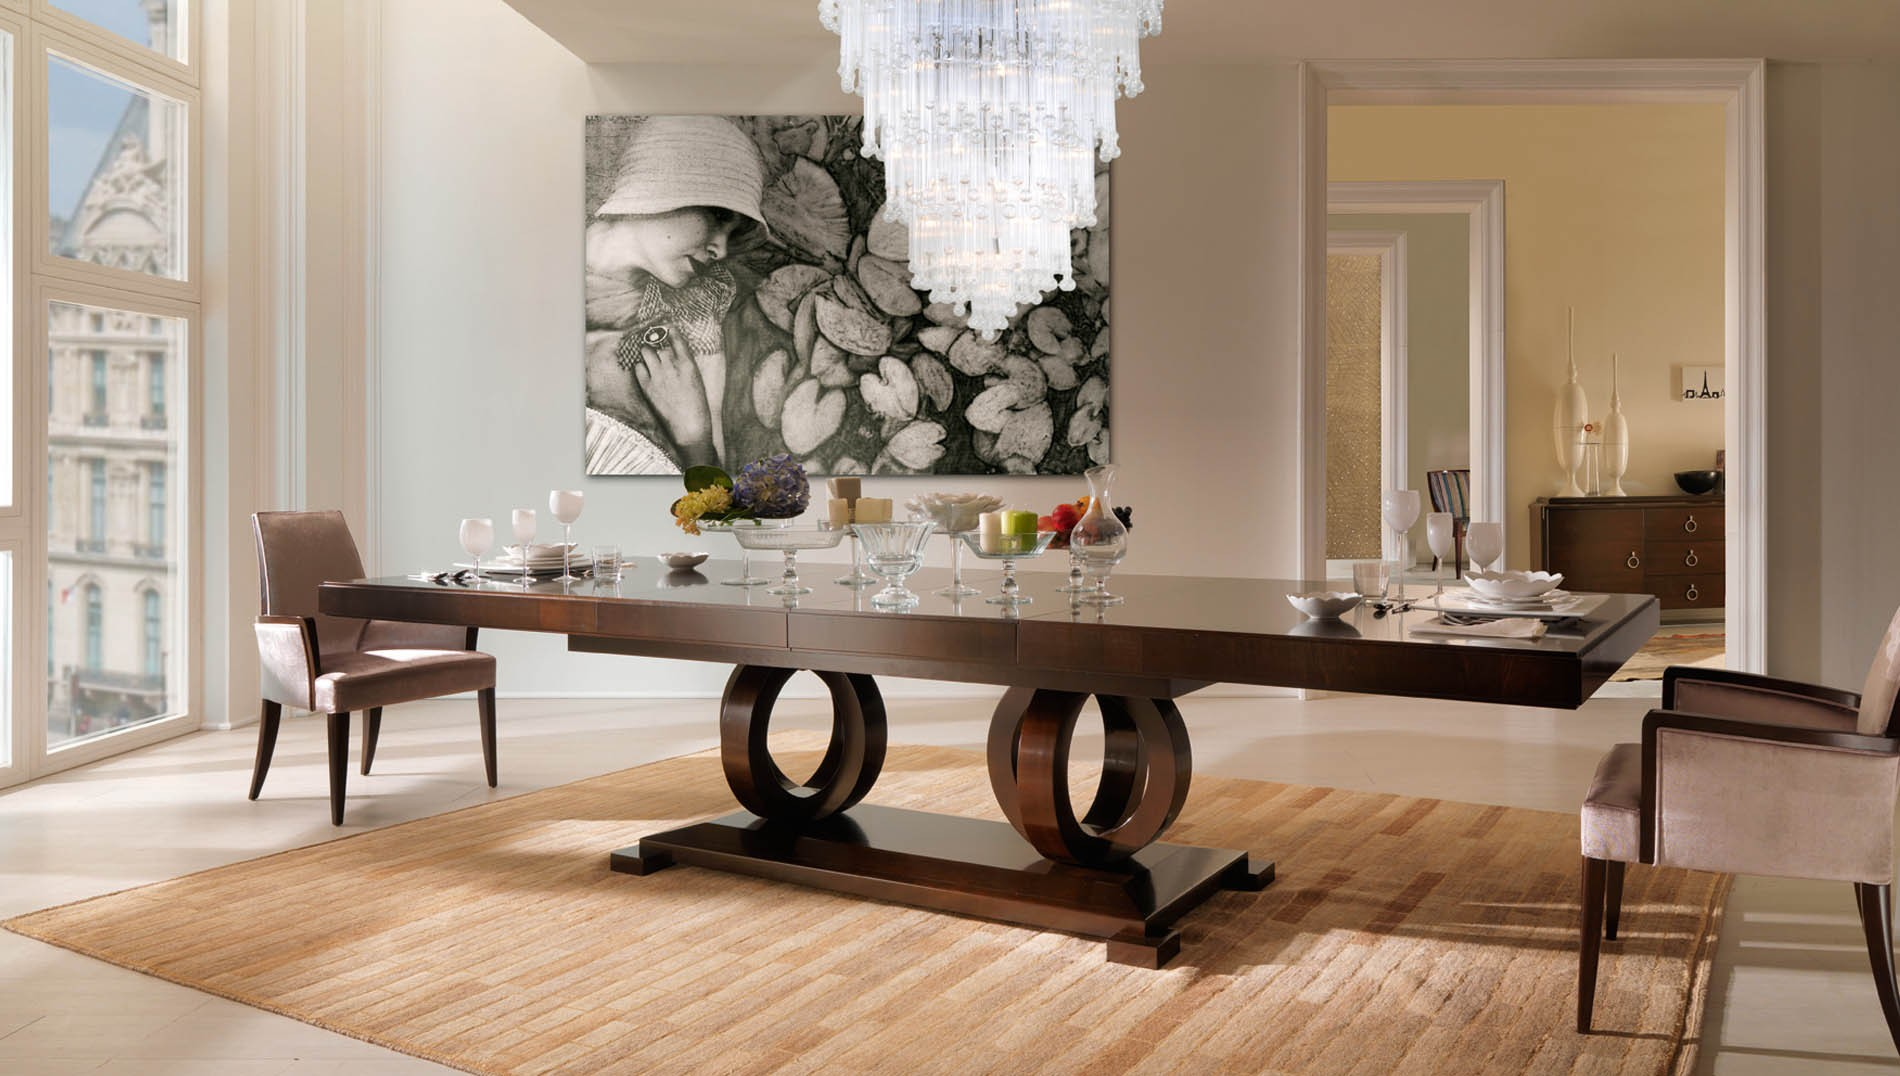 Buy Dining Tables quotes House Designer kitchen